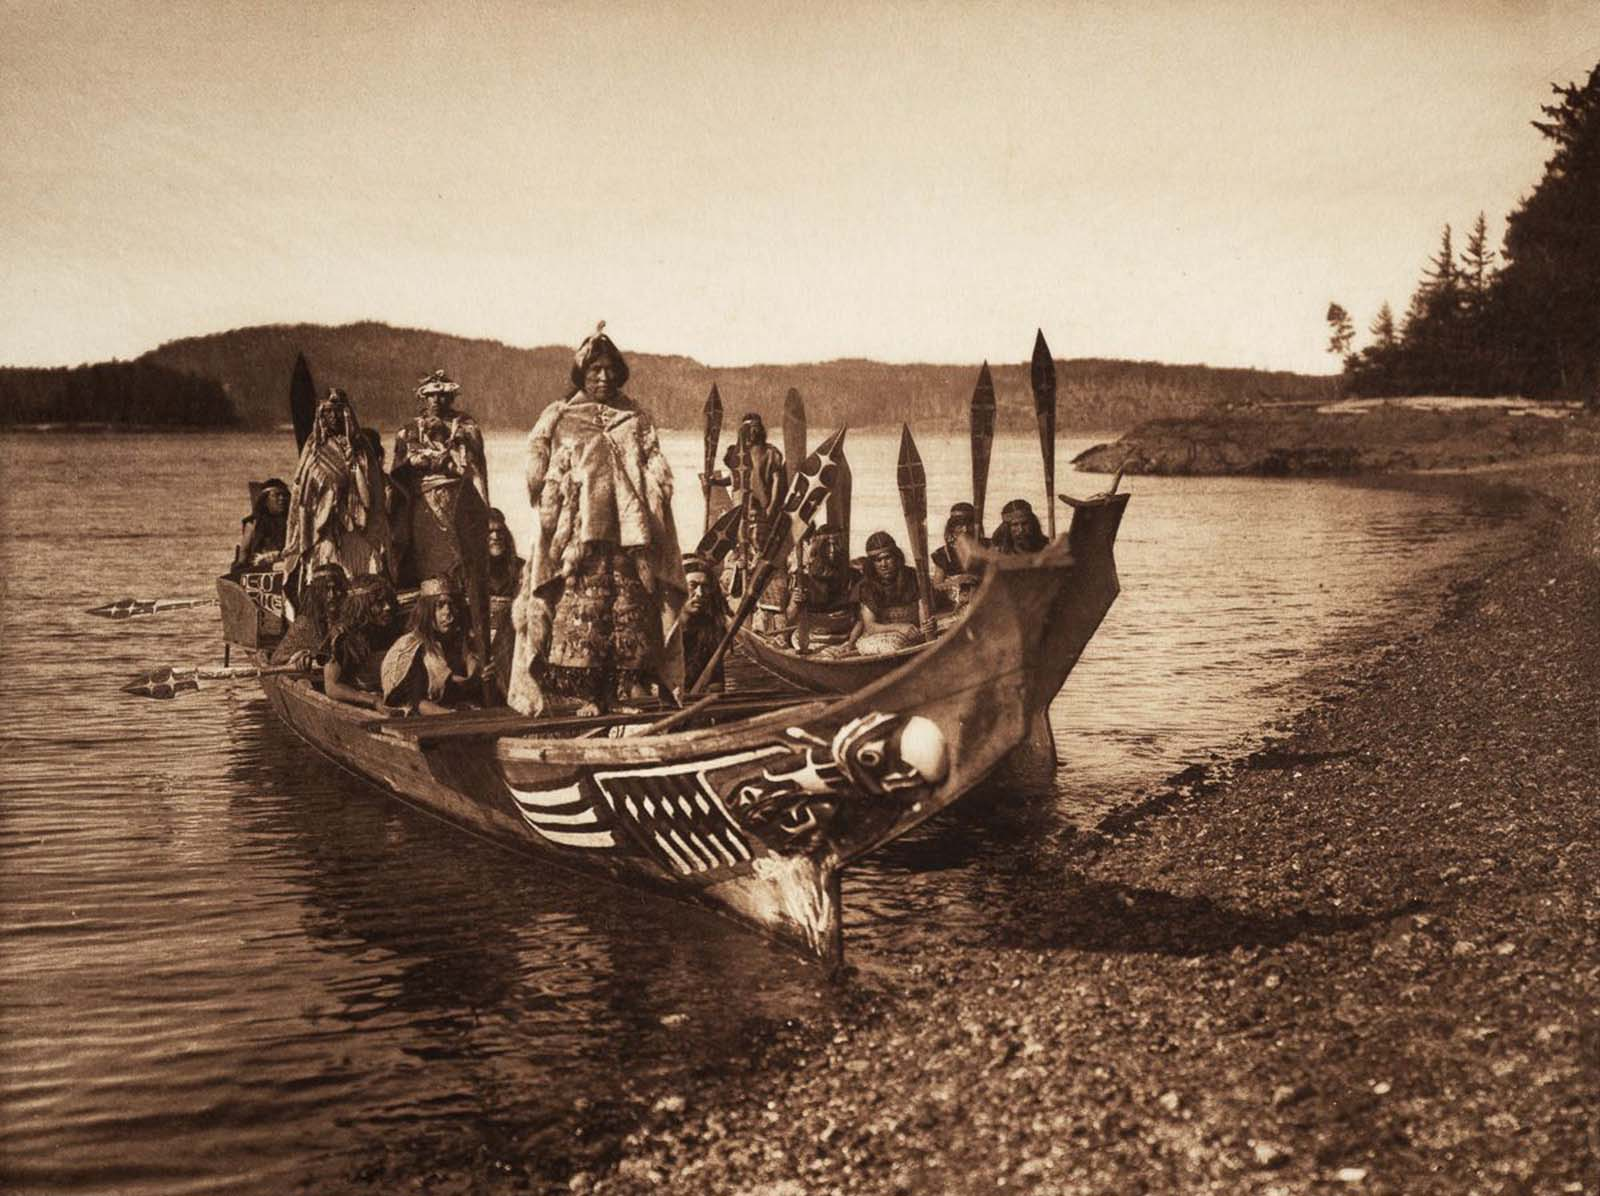 A Kwakiutl wedding party arrives in canoes. 1914.